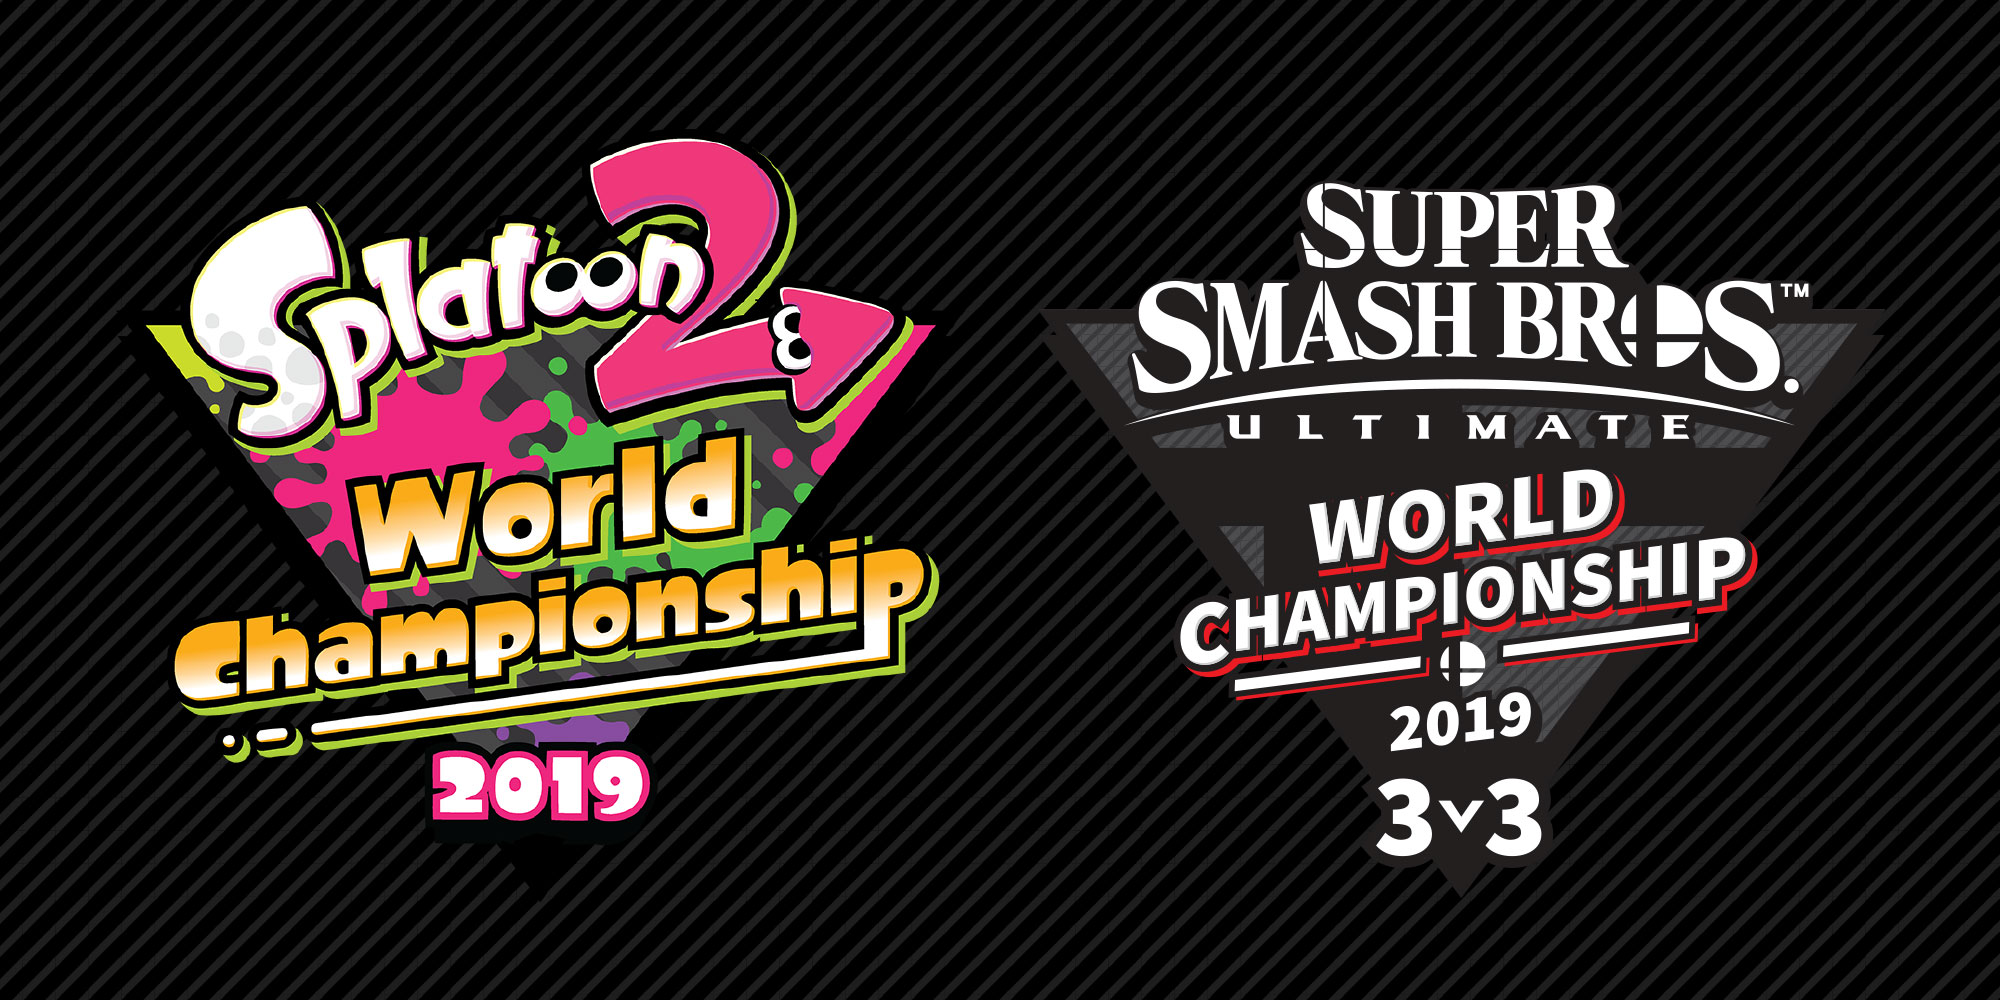 Wereldkampioenen Splatoon 2 en Super Smash Bros. Ultimate gekroond tijdens E3 2019!